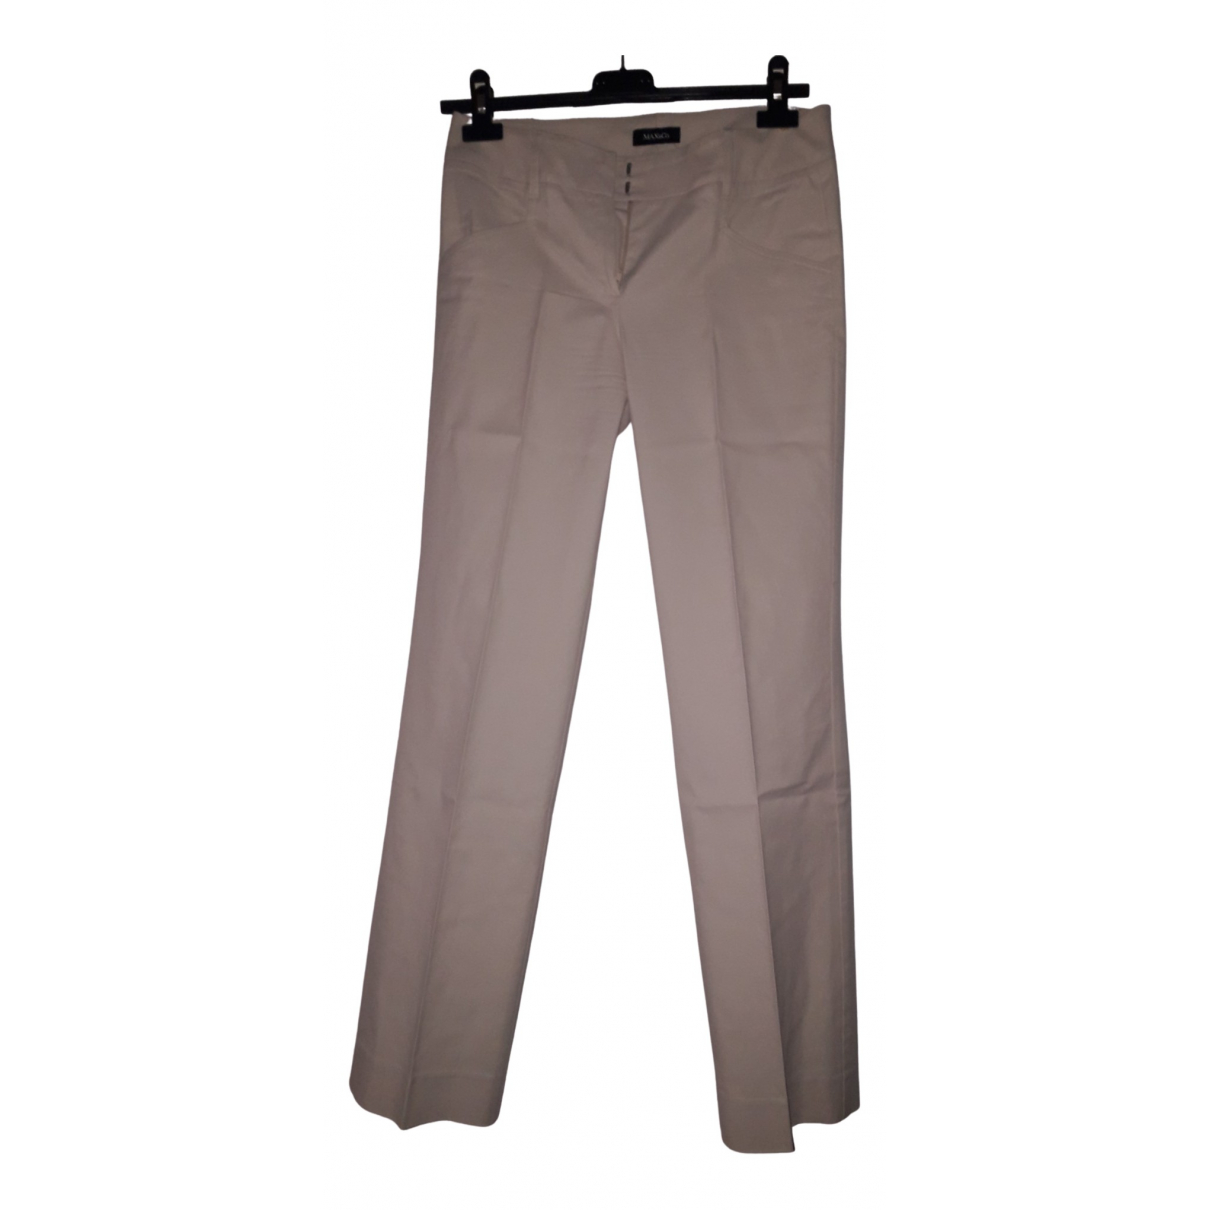 Max & Co \N Beige Cotton Trousers for Women 38 IT